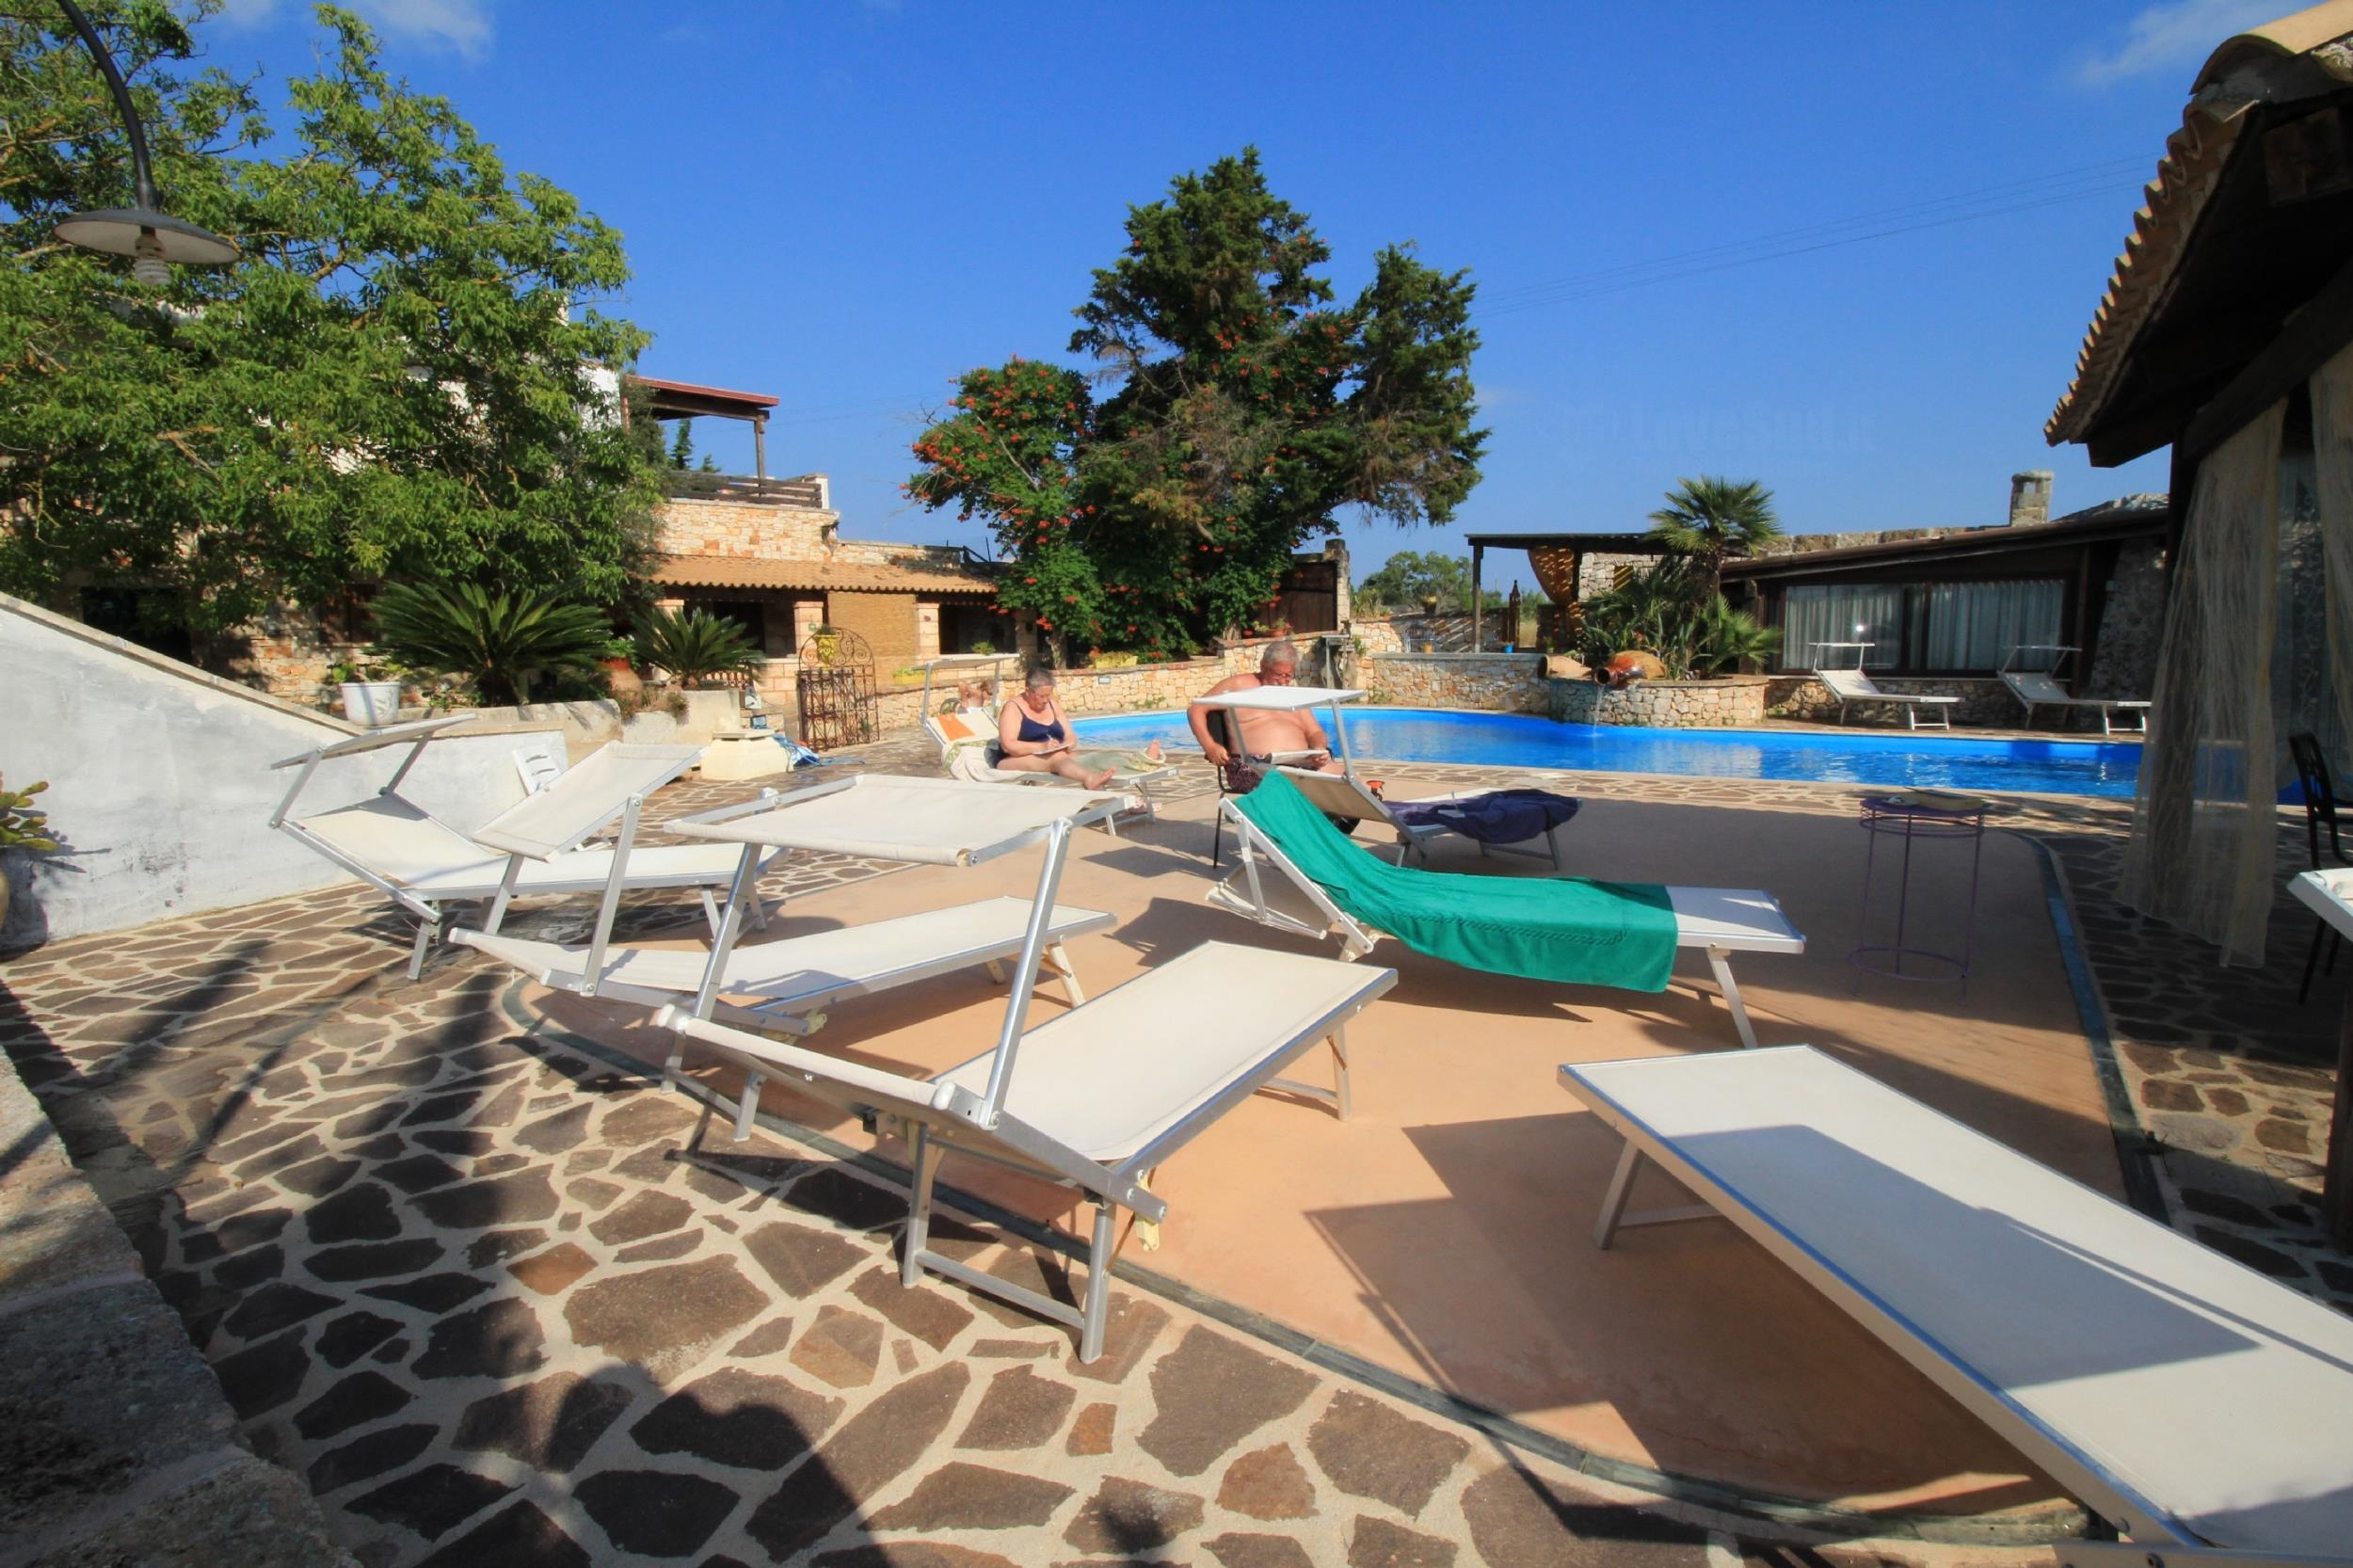 Apartment Trilo Noce shared pool photo 25188302